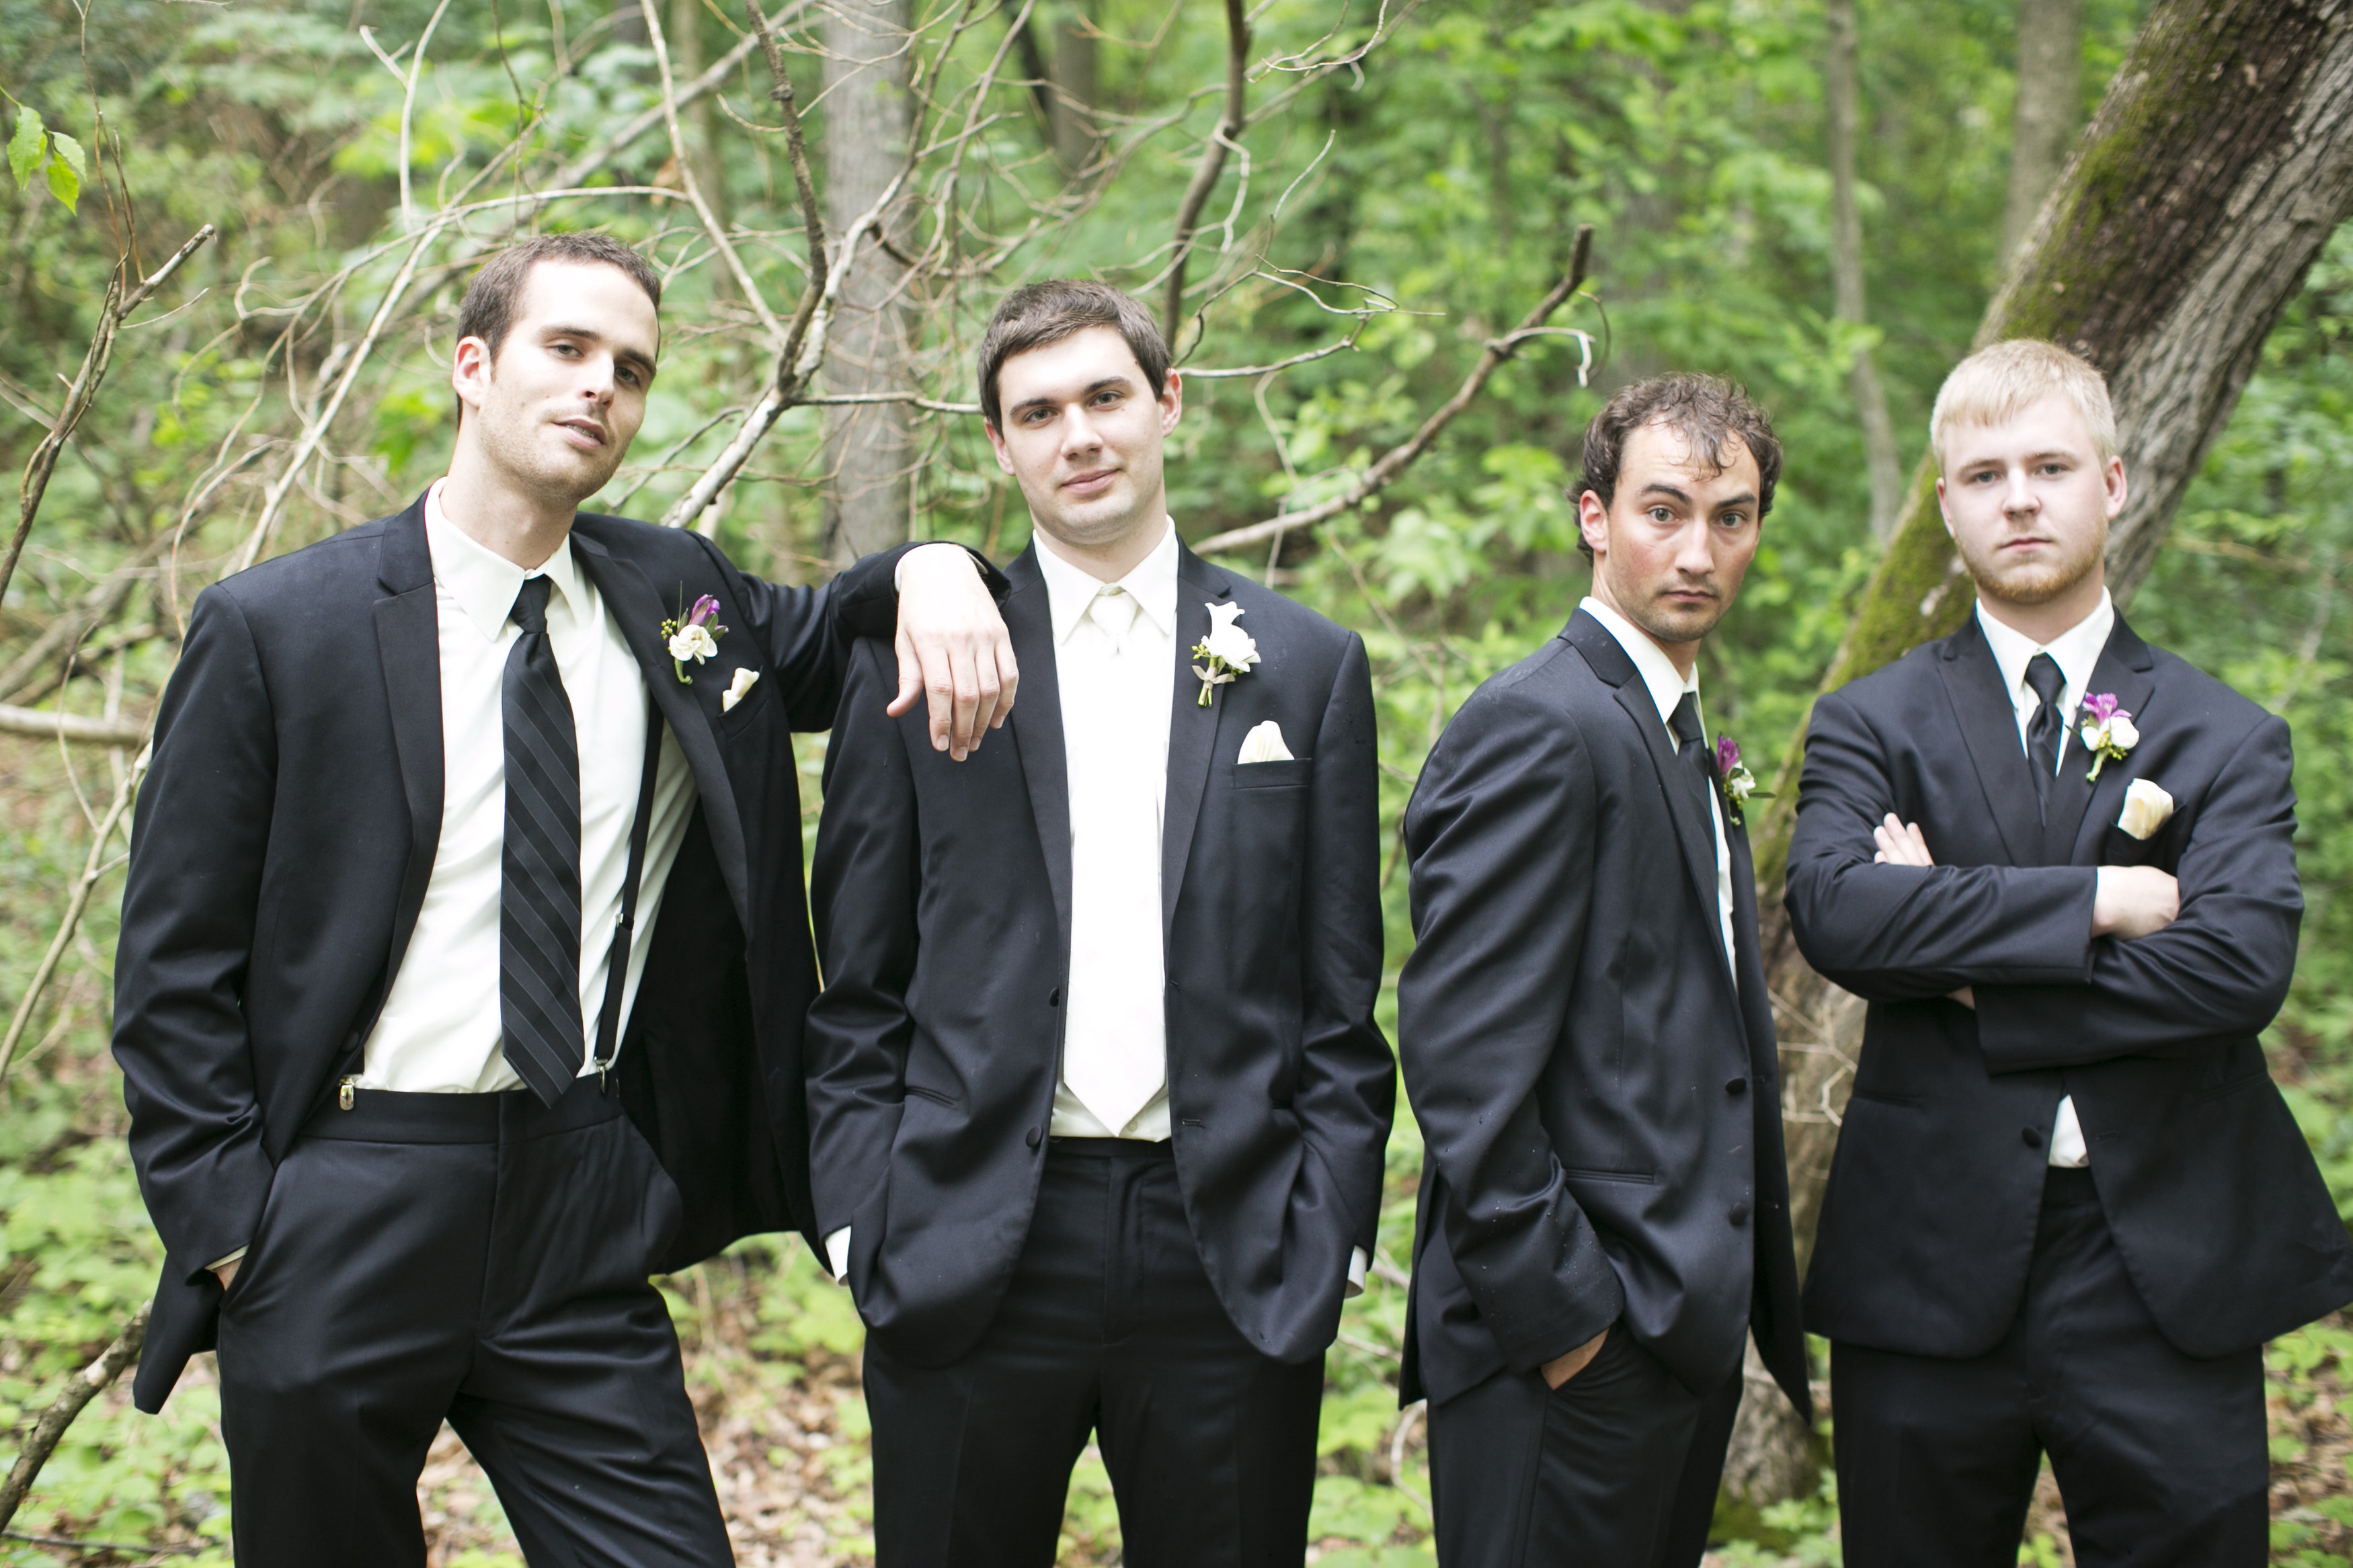 groom and groomsmen in black suits